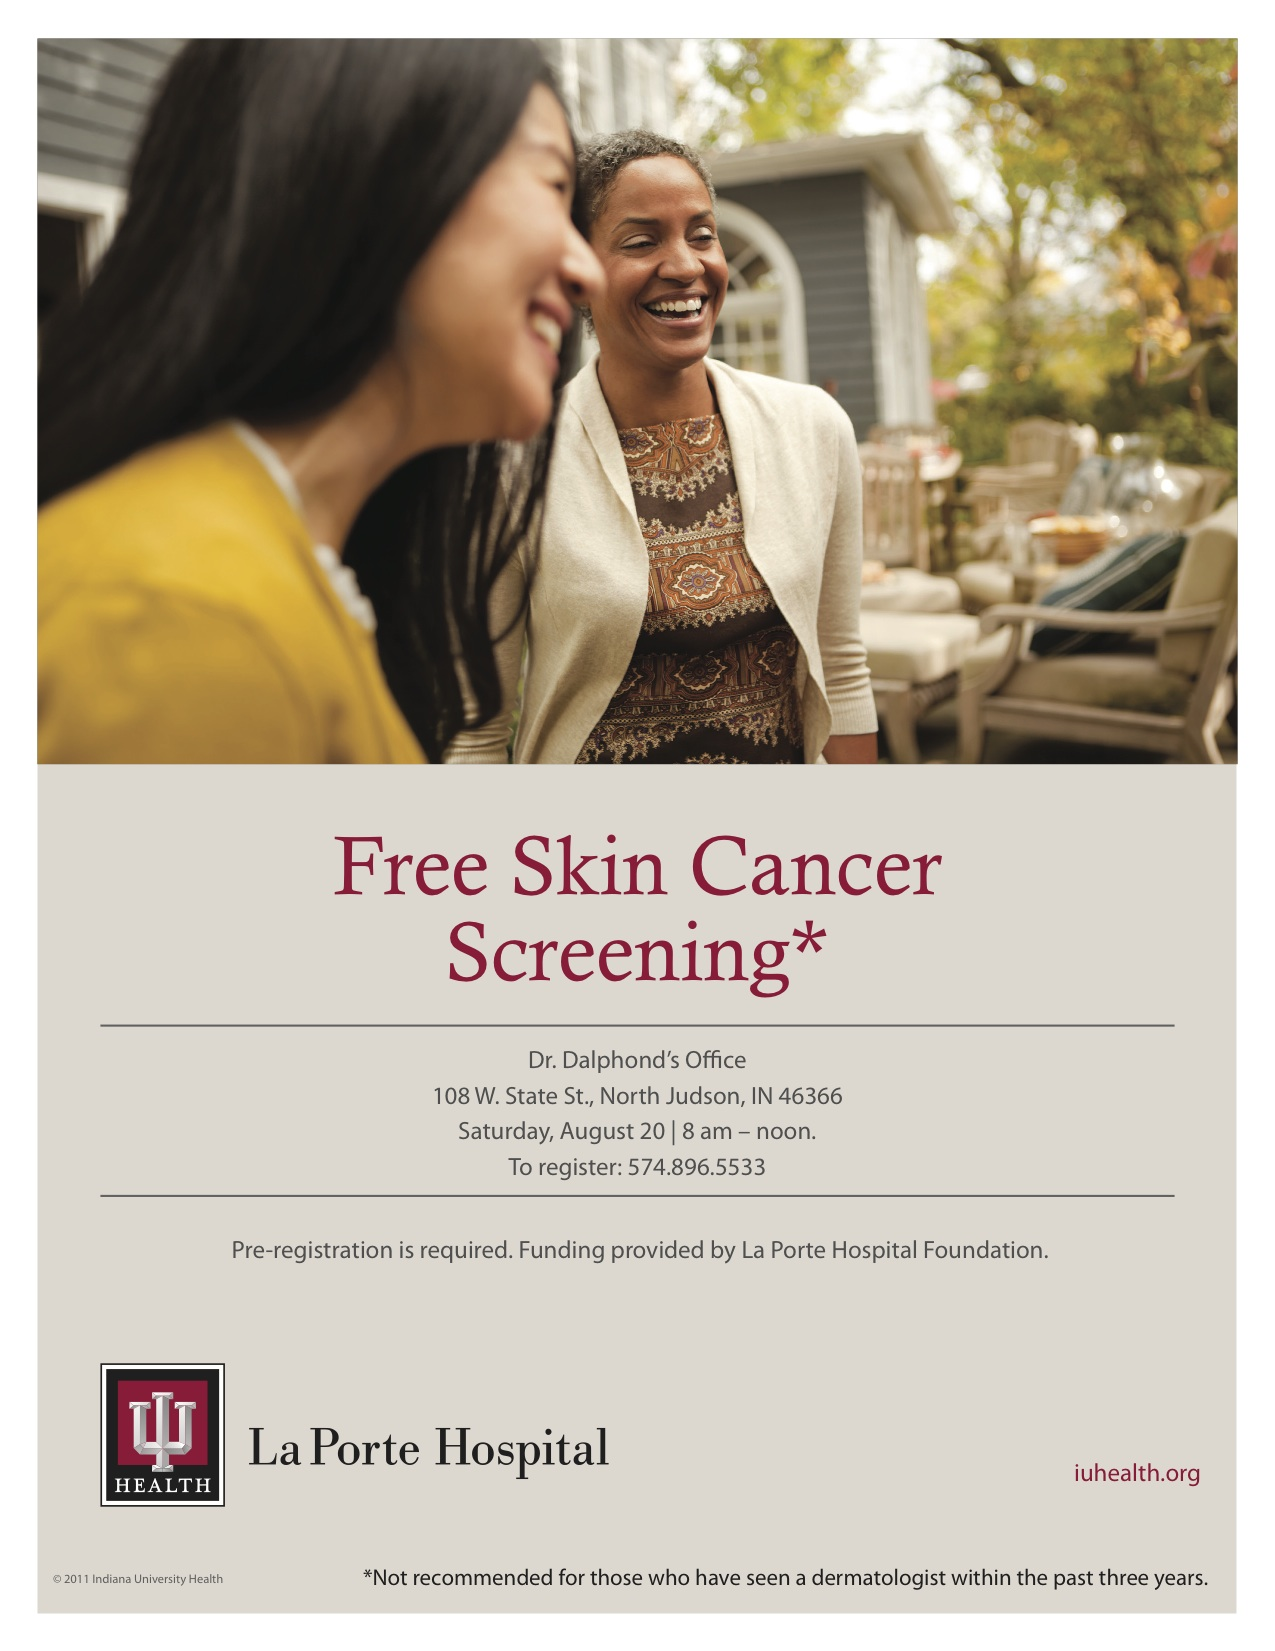 Iu health la porte hospital screenings for Iu laporte hospital